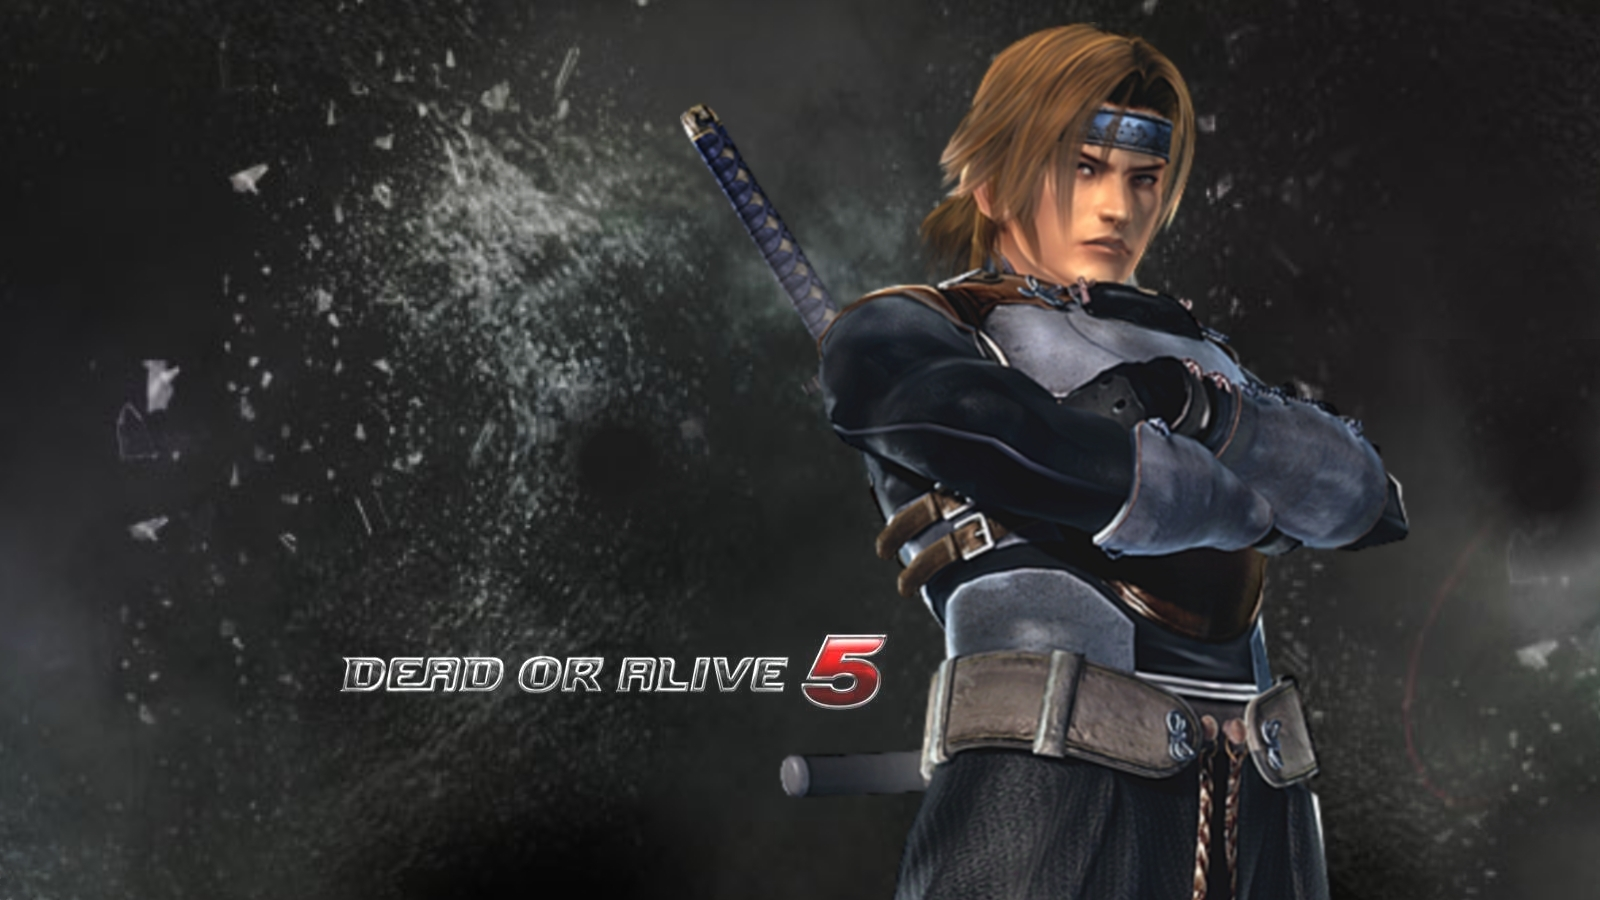 Hayate Dead or Alive 5 Wallpaper 1600x900